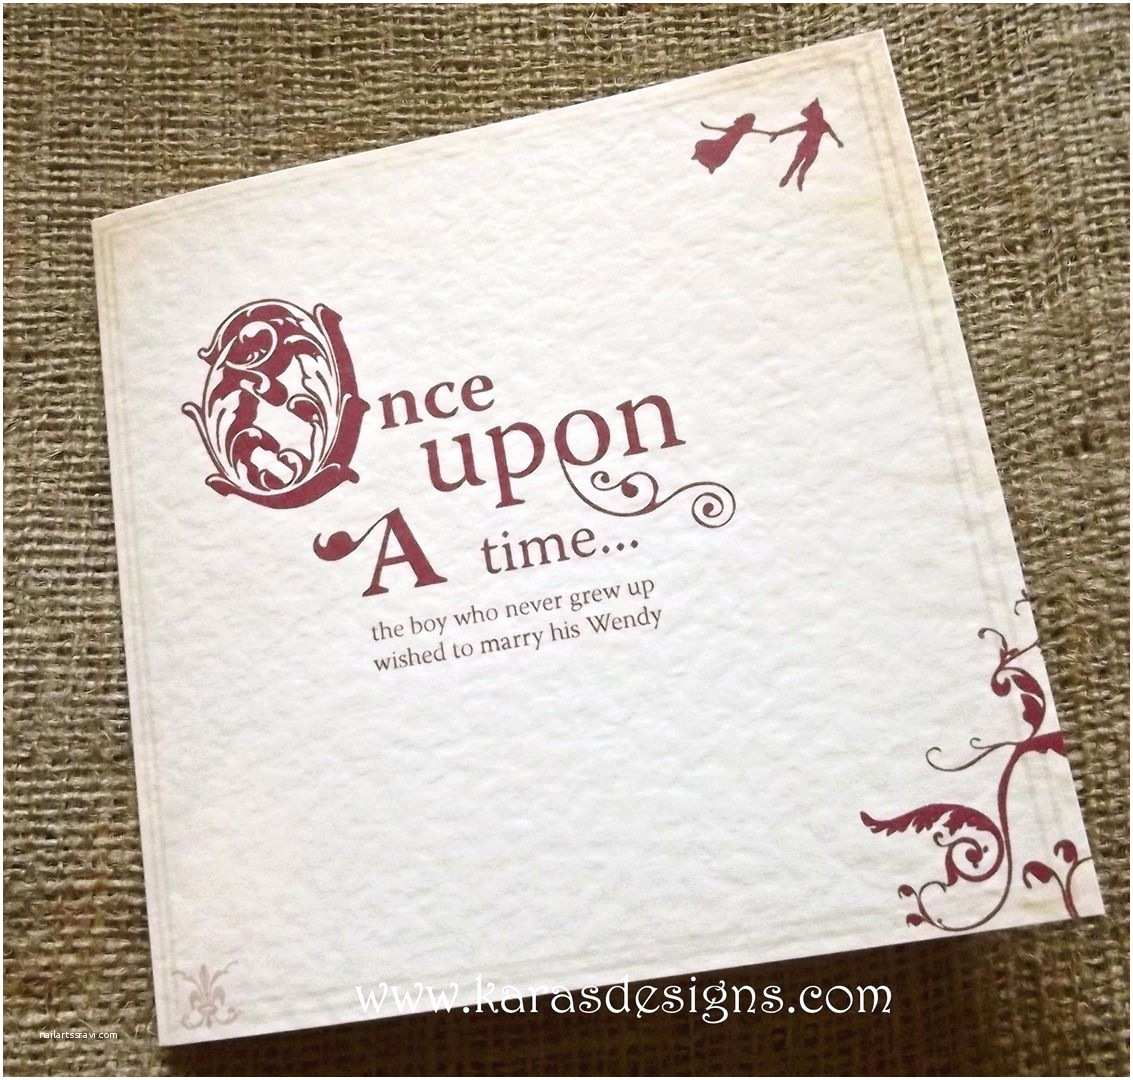 Once Upon A Time Wedding Invitations Kara S Designs Wedding Stationery Ce Upon A Time